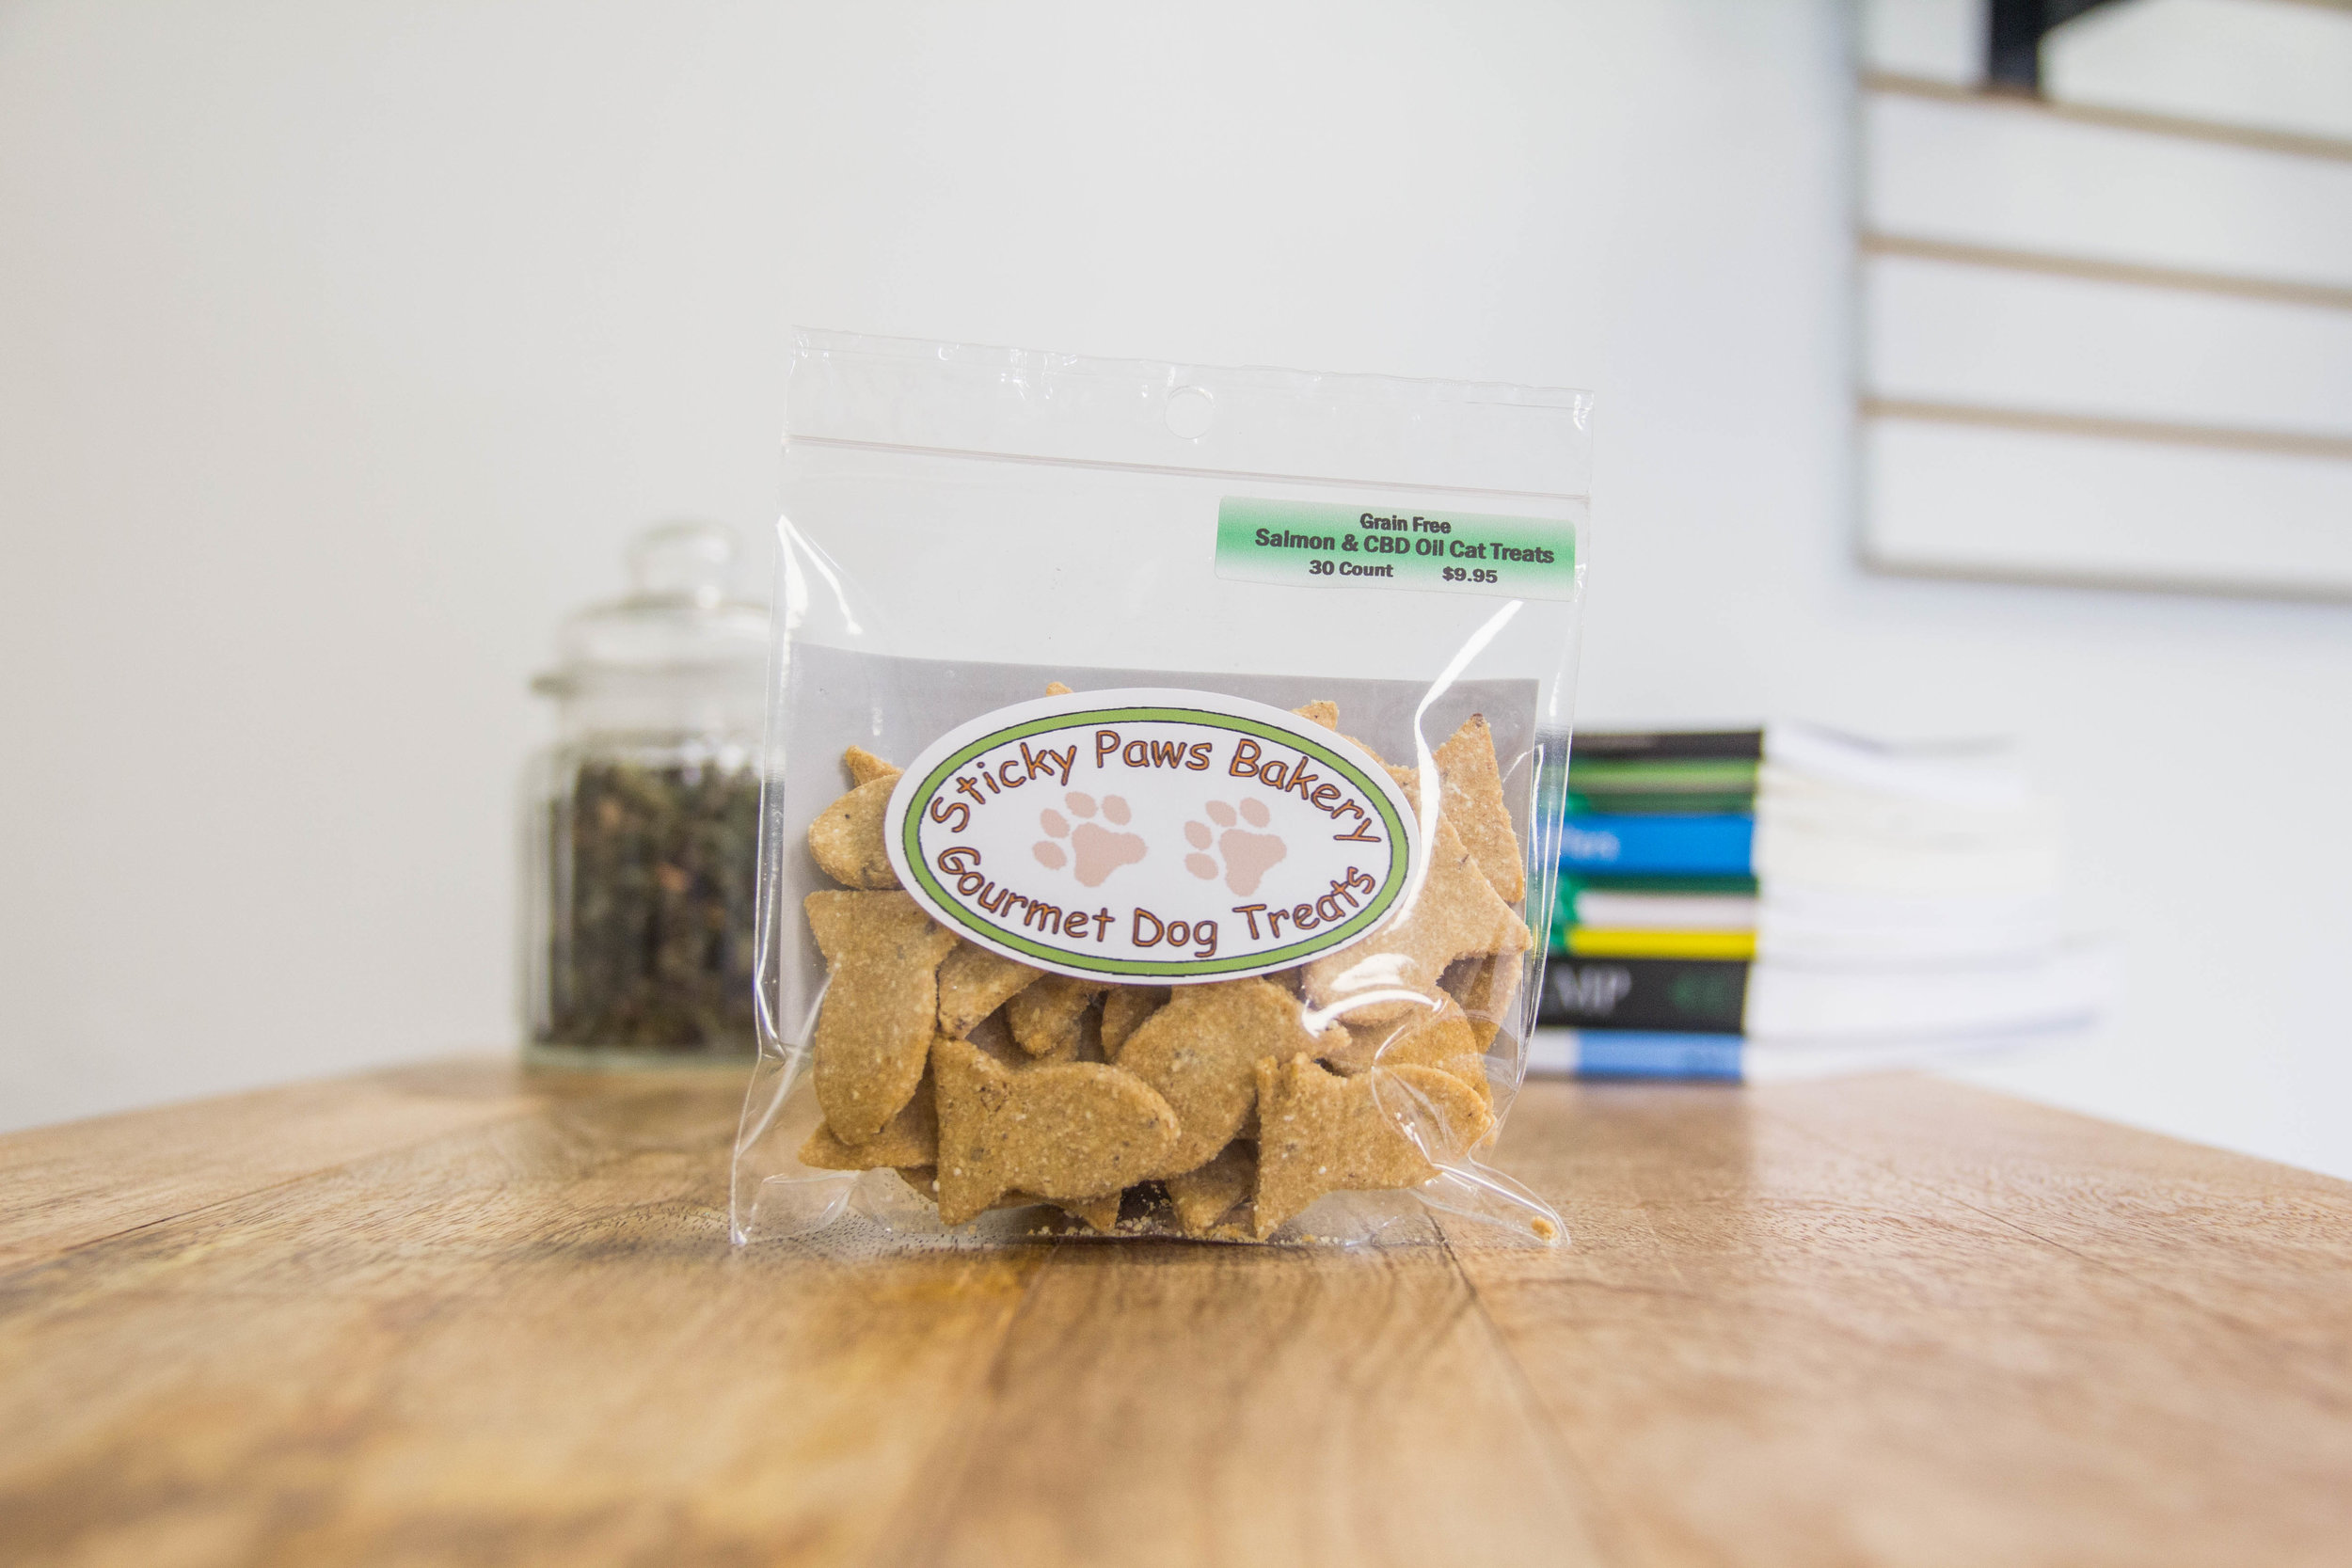 Sticky Paws Bakery - salmon and cbd oil cat treats